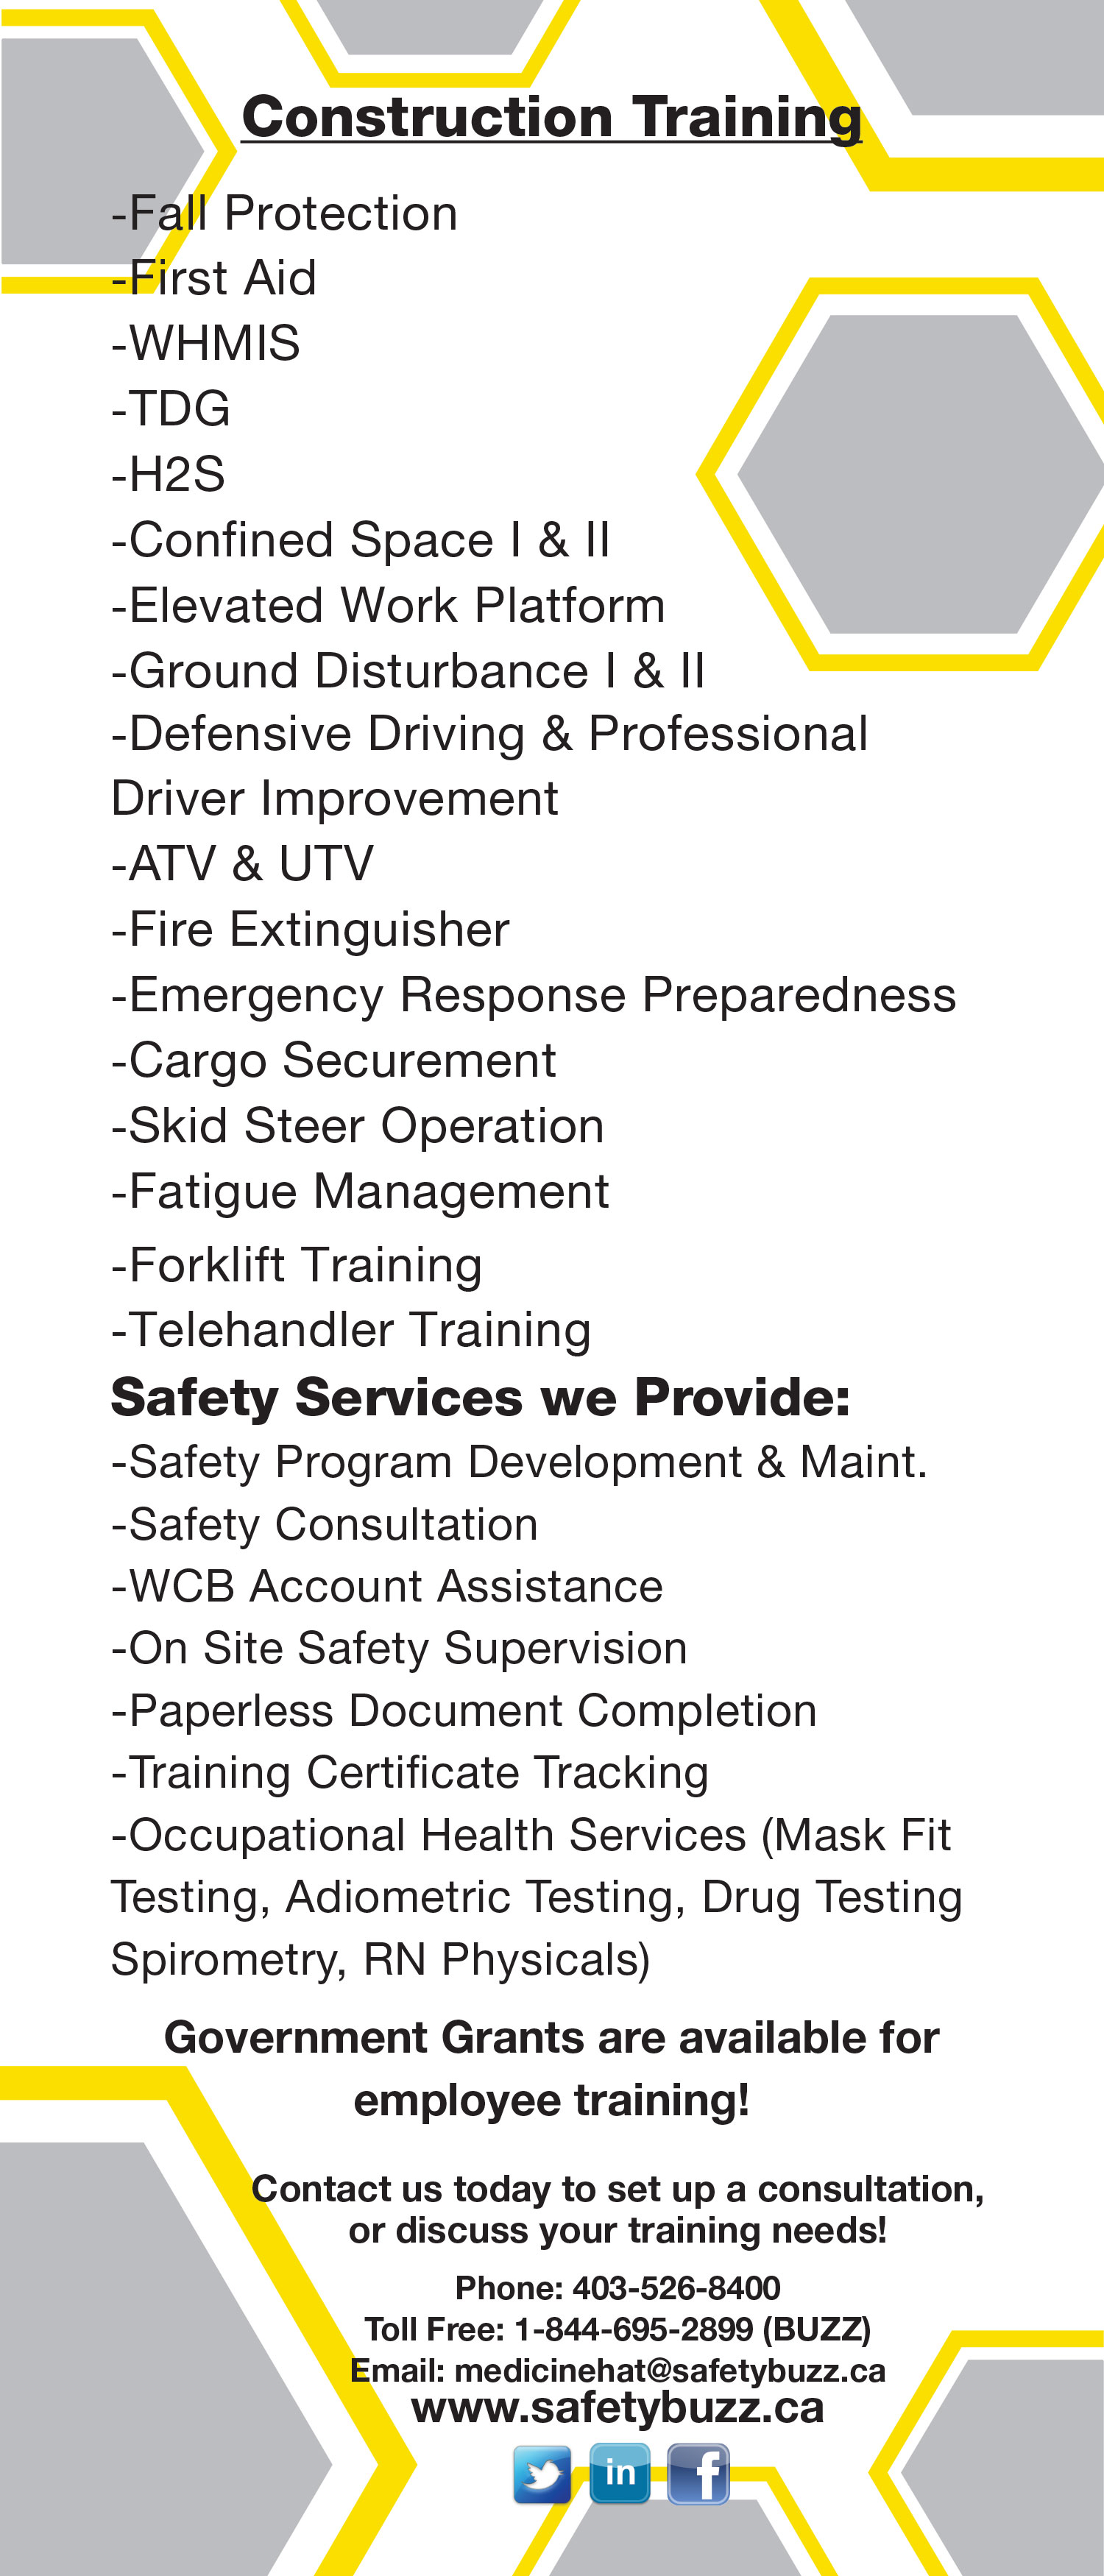 Construction safety buzz safety training in medicine hat and construction 1betcityfo Gallery